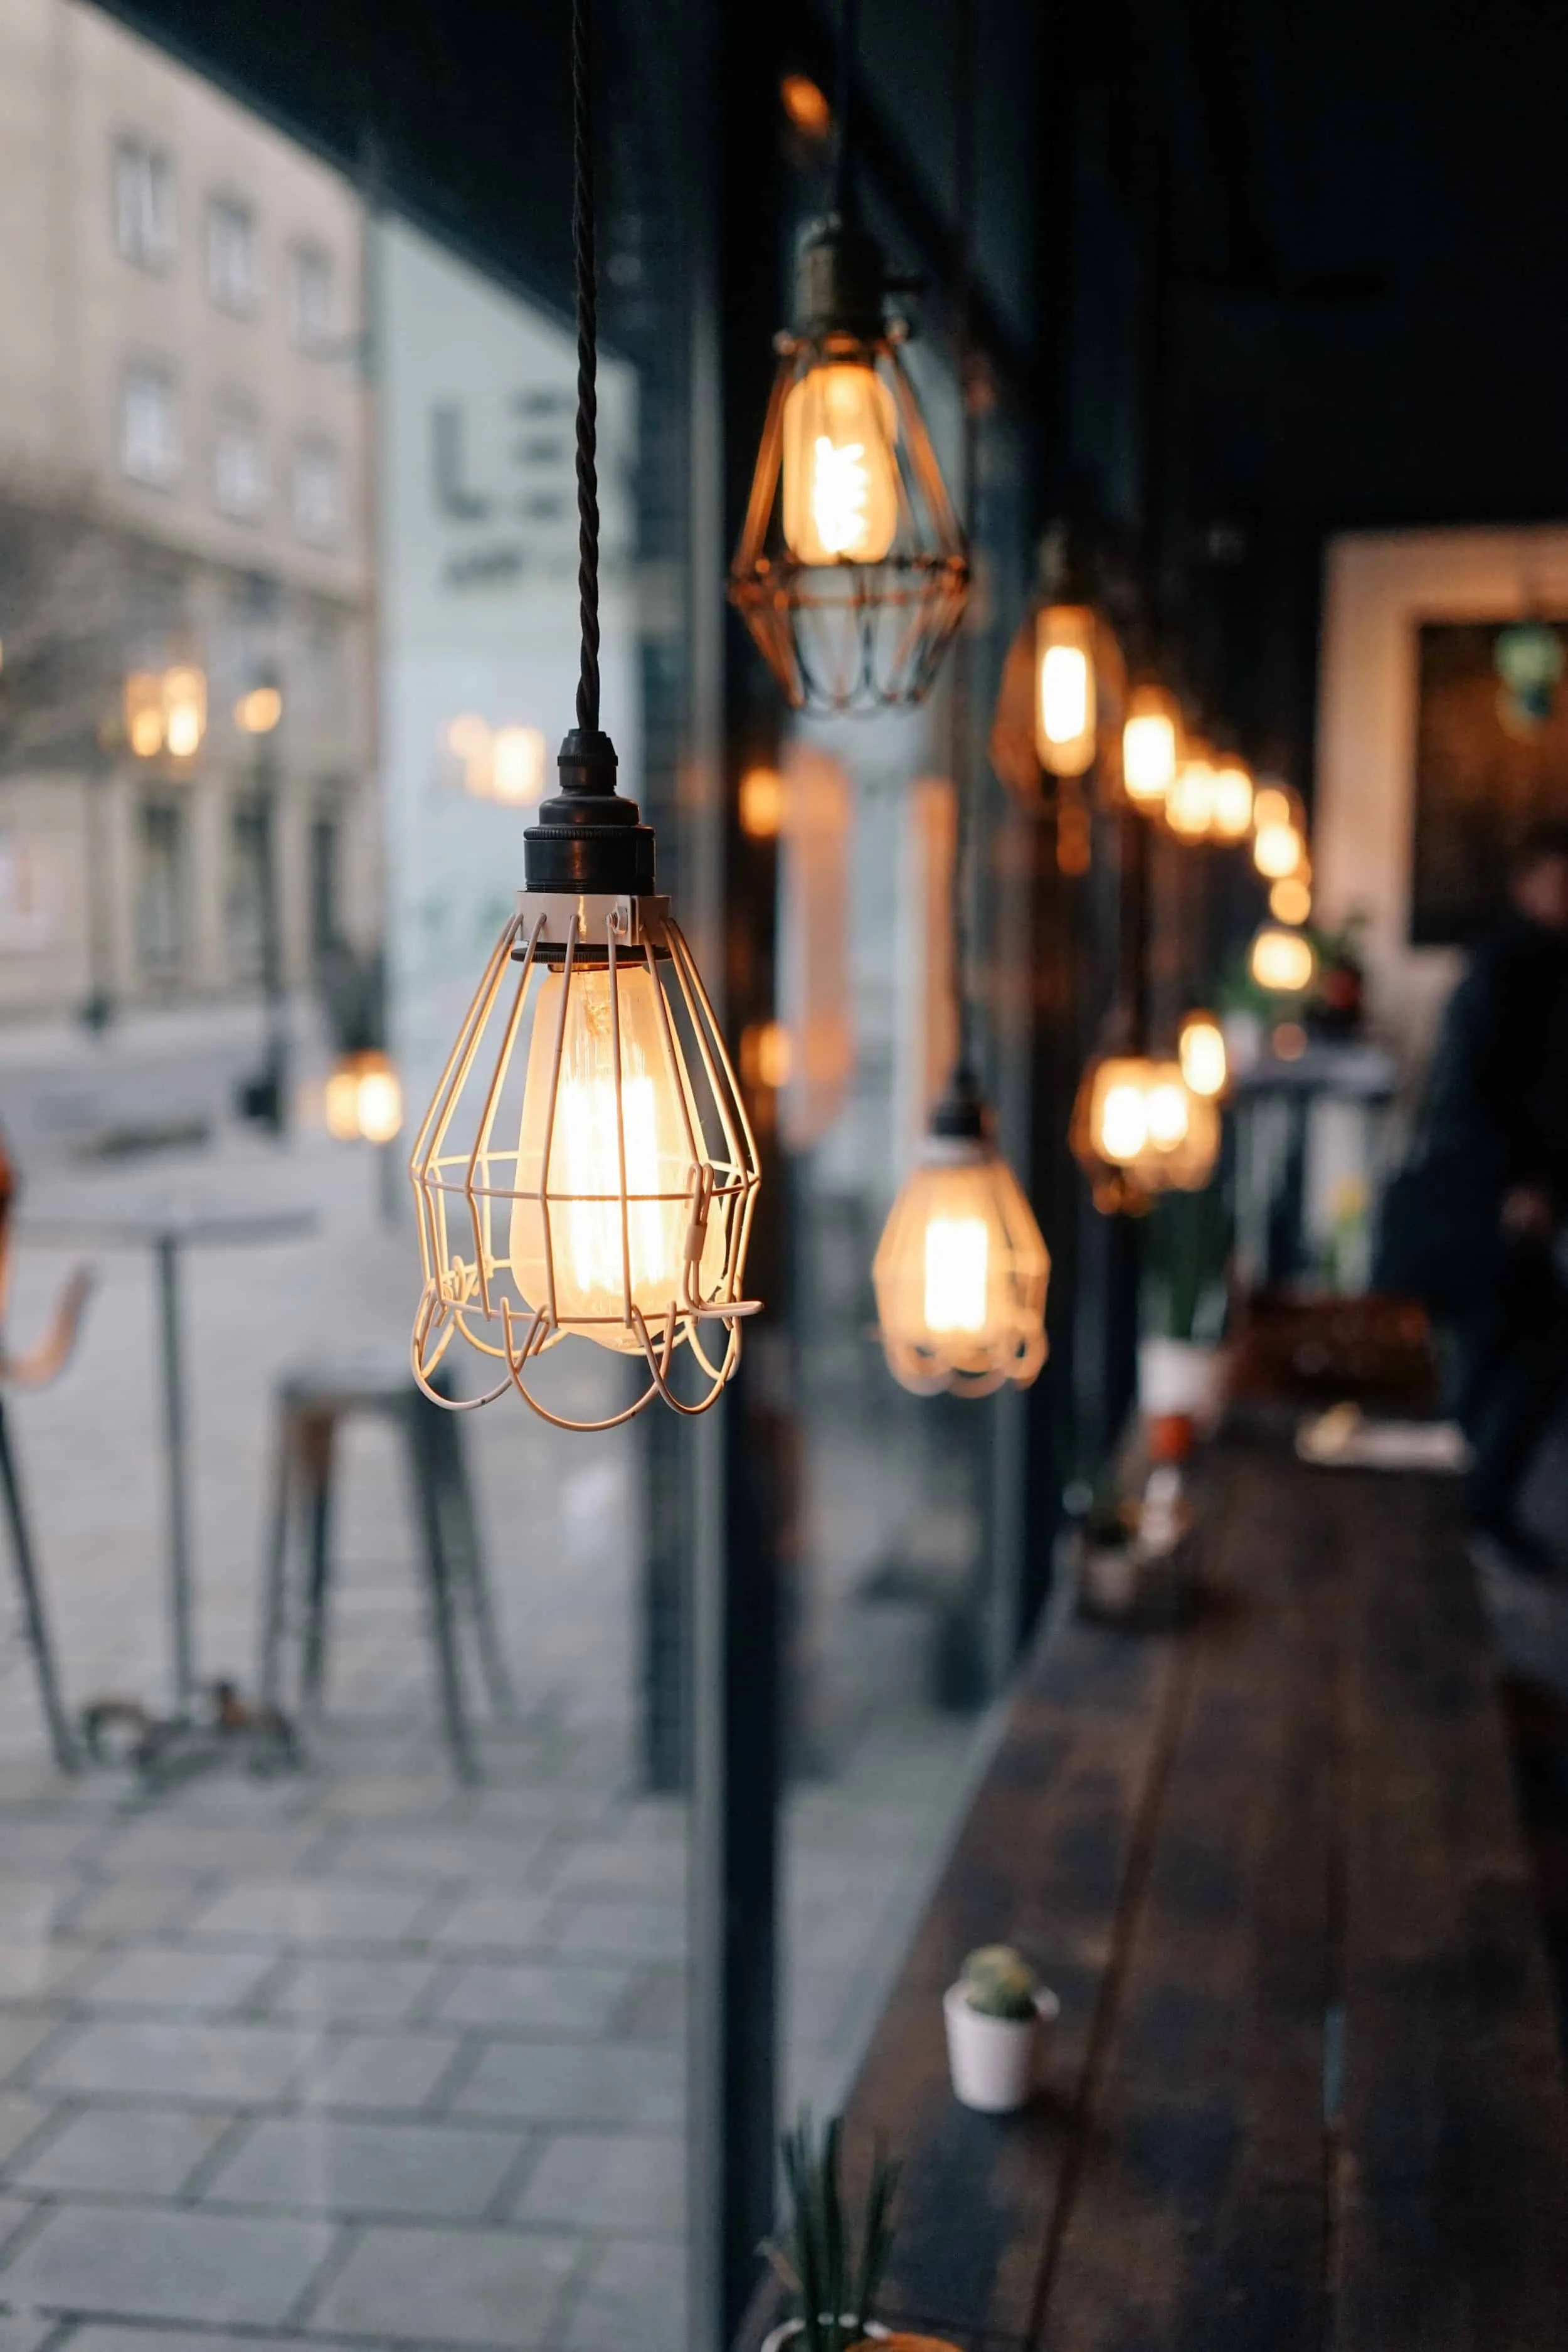 hanging lights in a row at a coffee shop window